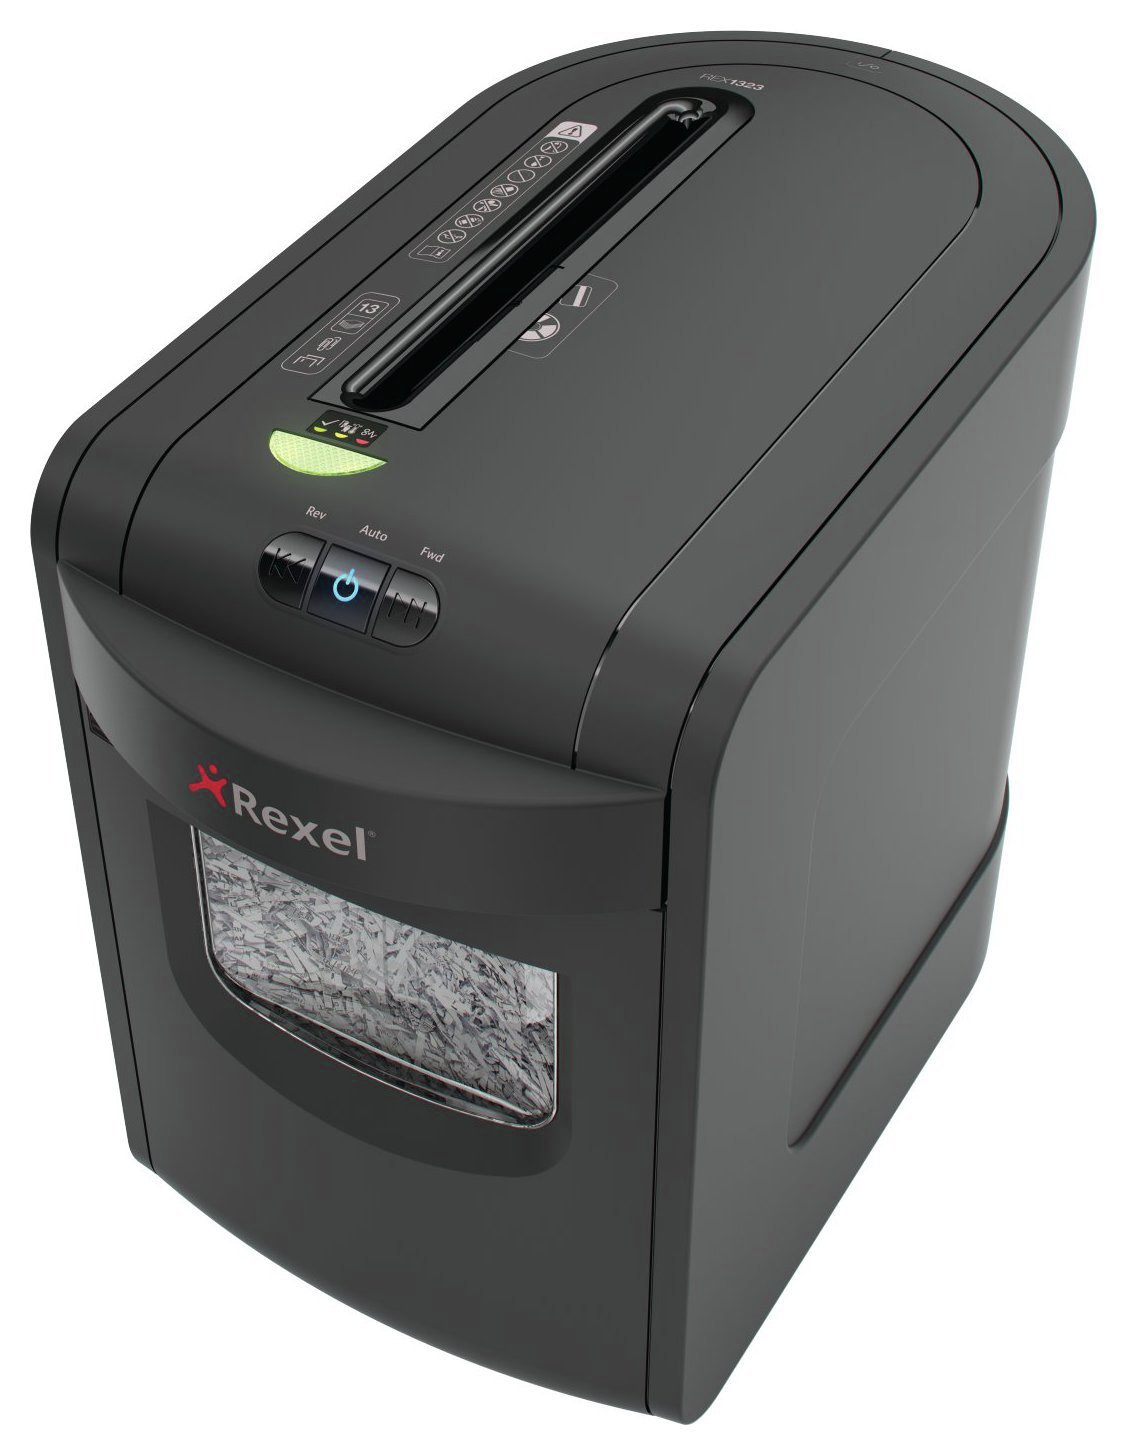 Image of Rexel Mercury REX1323 Shredder.